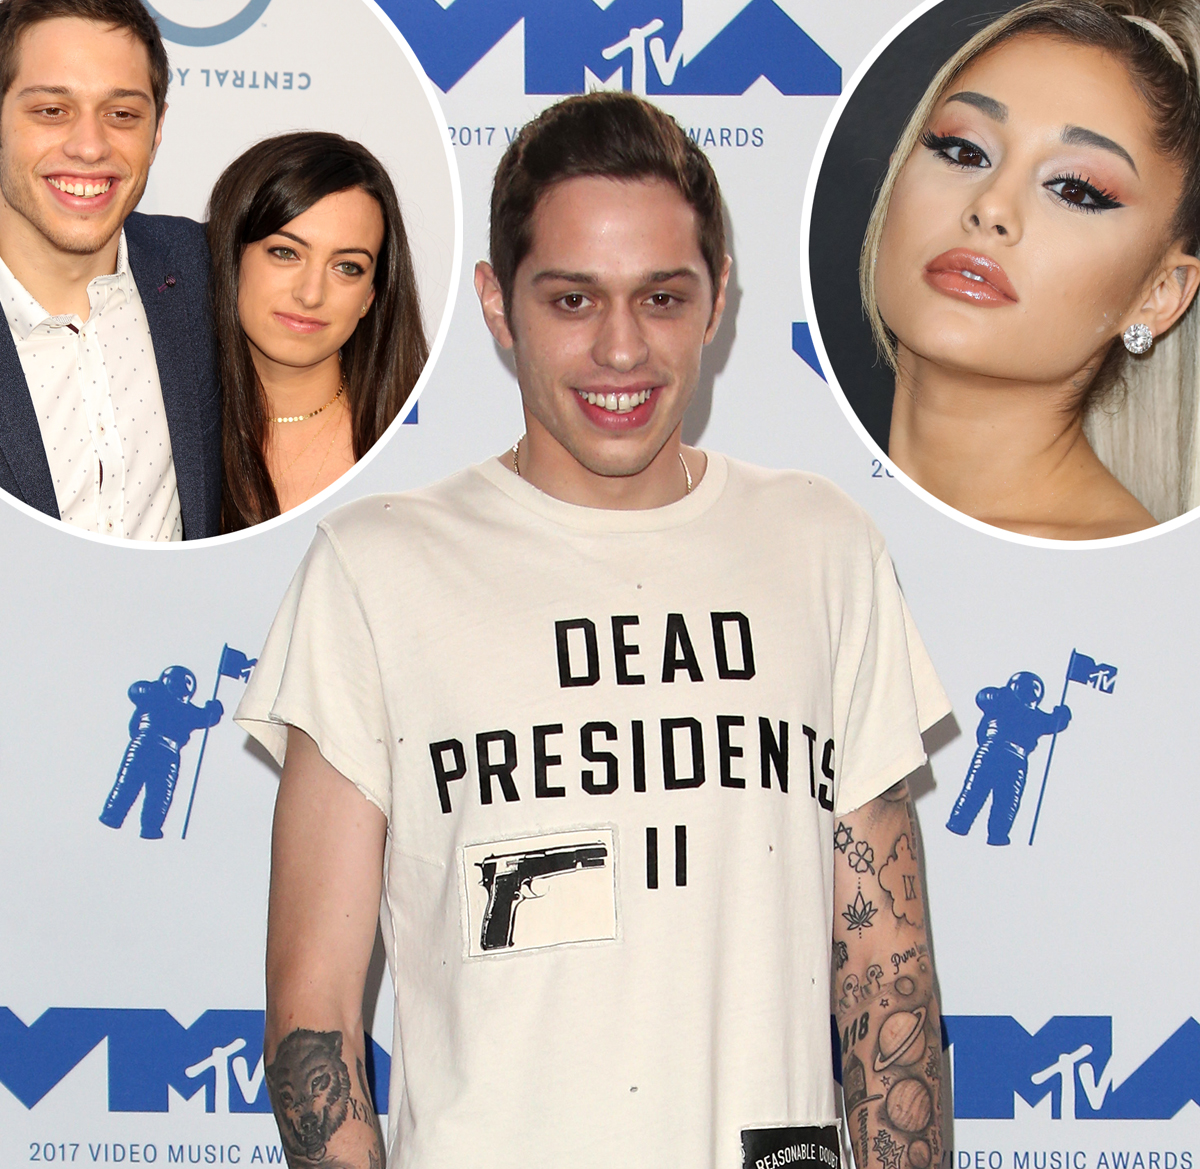 Pete Davidson covers up and removes tattoos